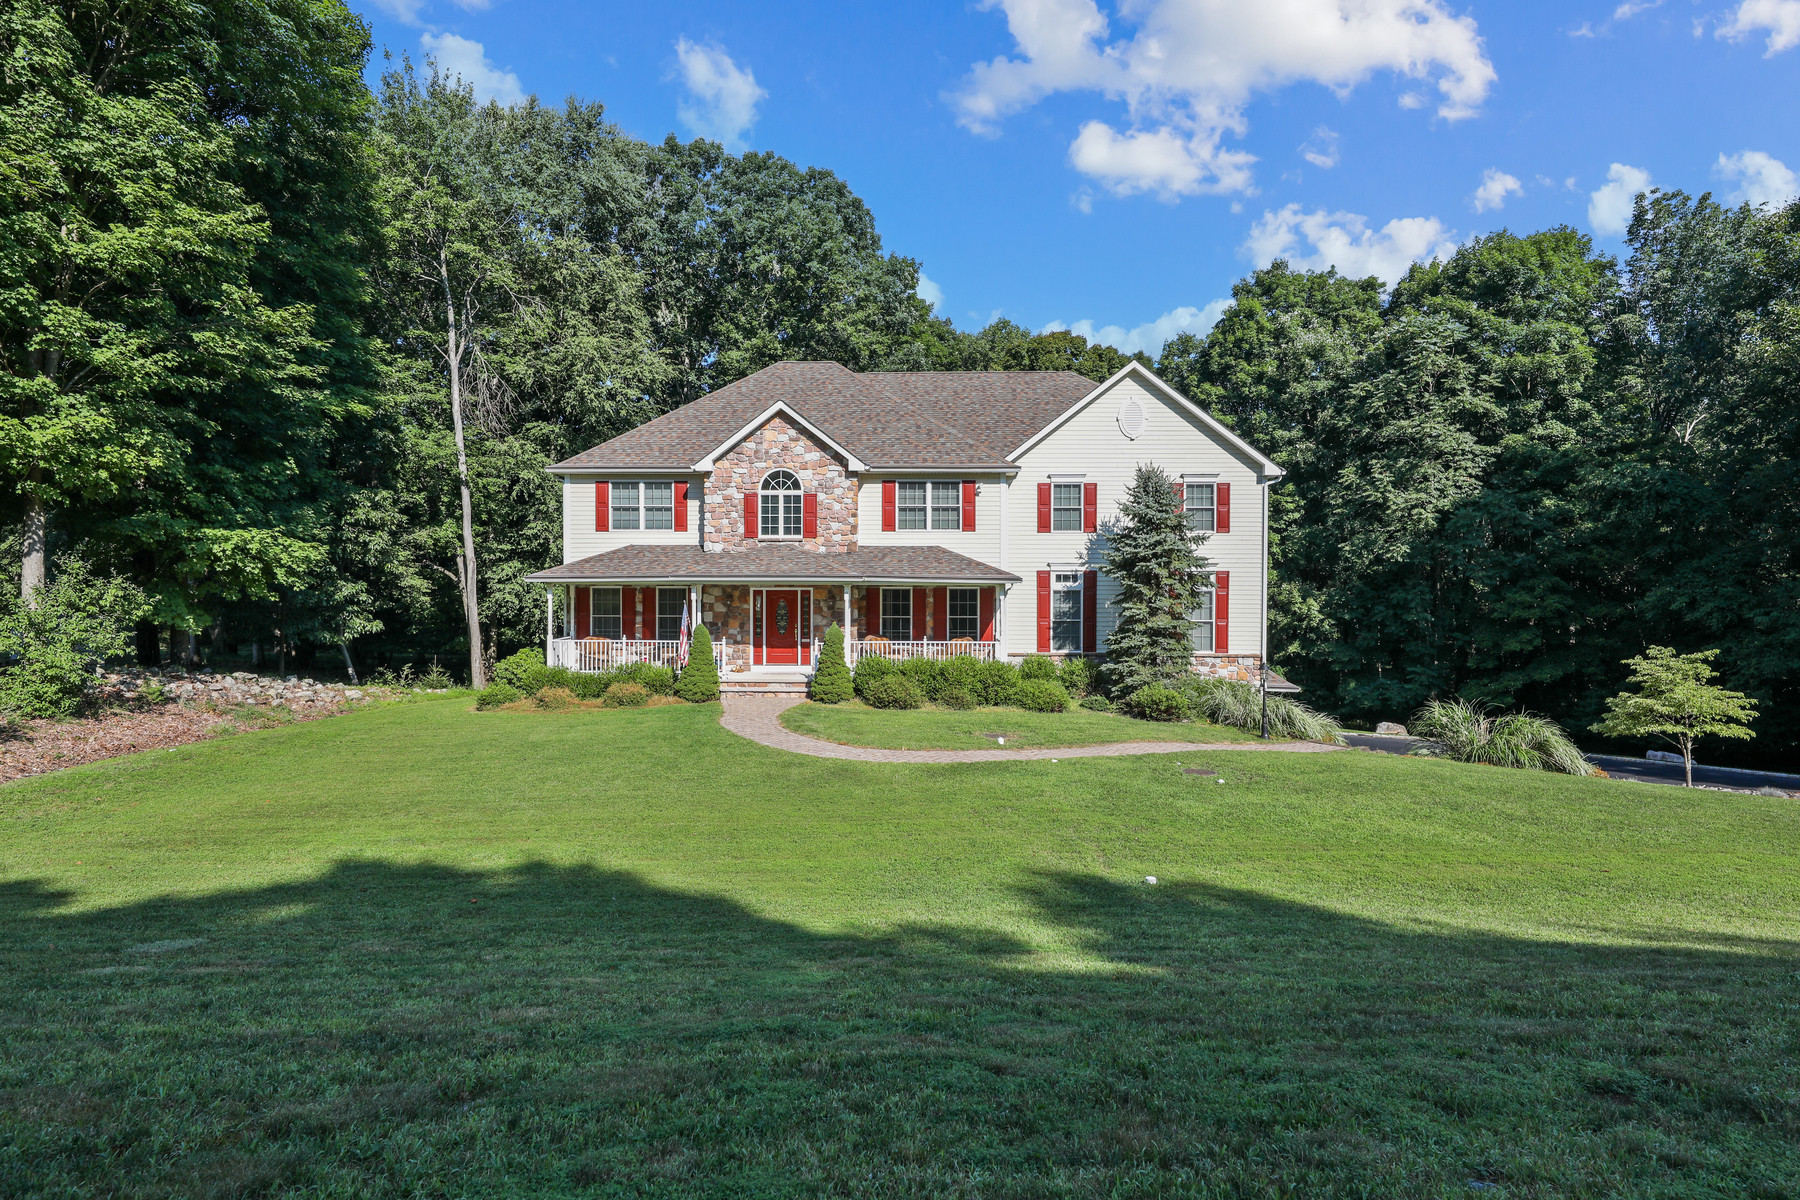 Single Family Homes for Sale at Extravagant Colonial on 5.6 Acres 8 Liberty Trail, Andover Township, New Jersey 07860 United States